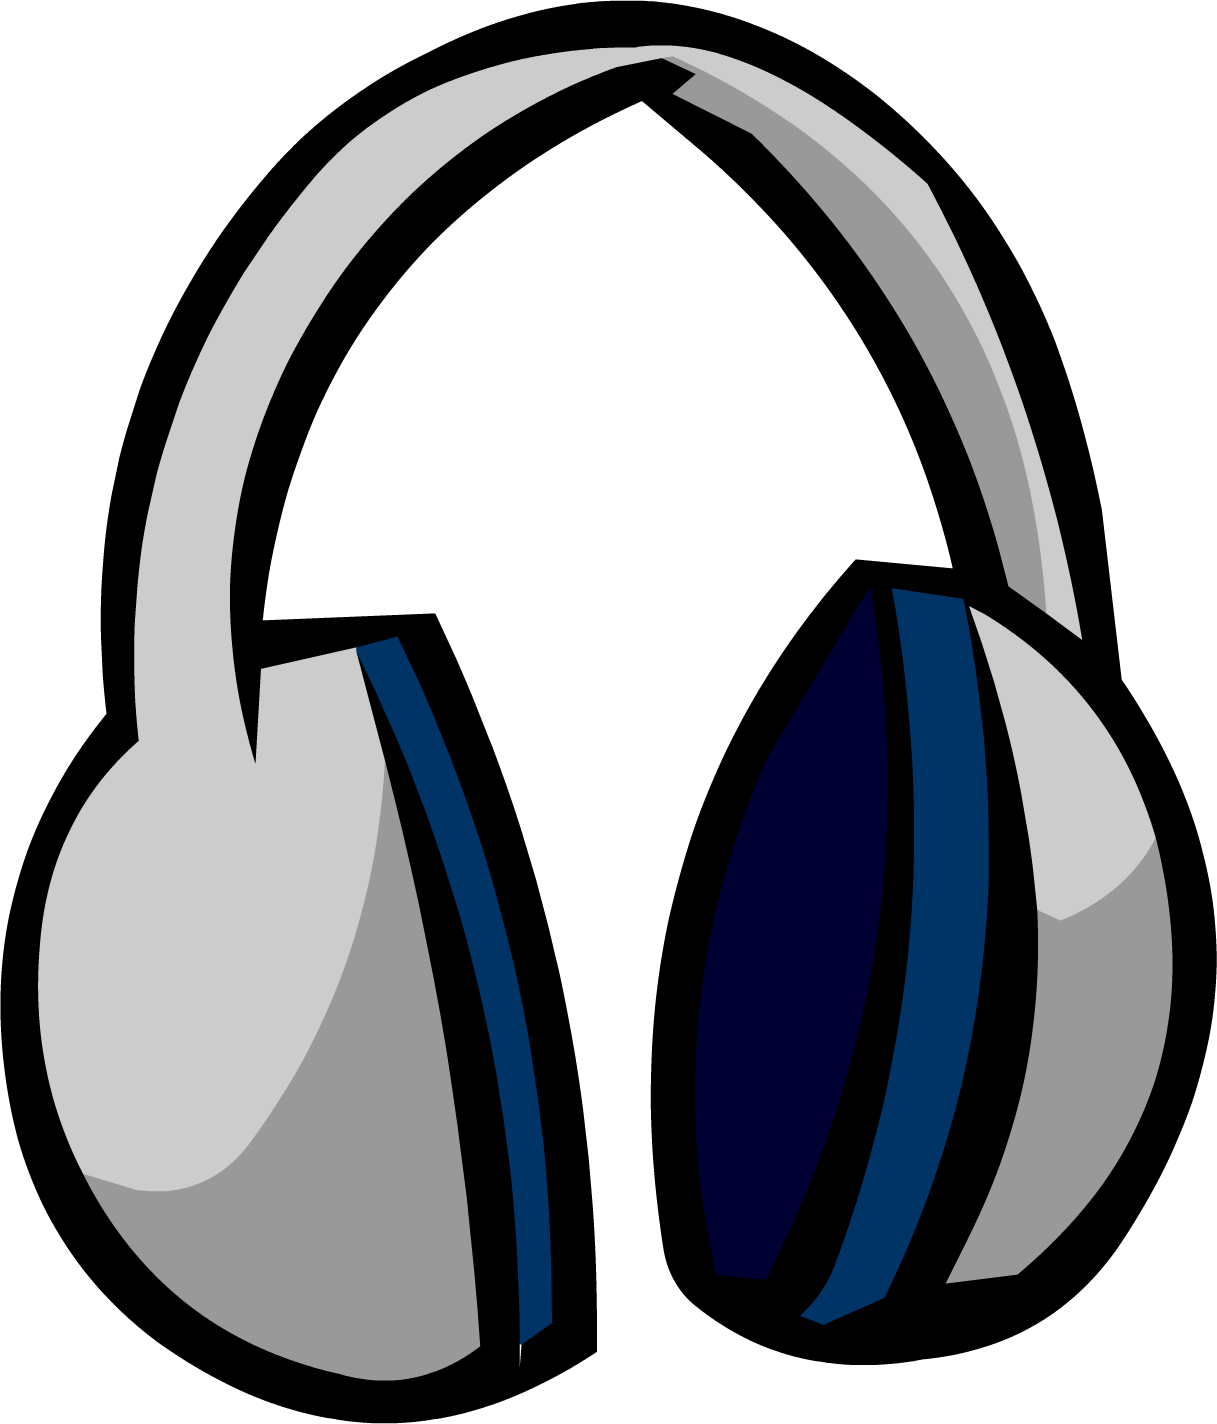 Headphones clipart dj headphone. Image clothing icon id